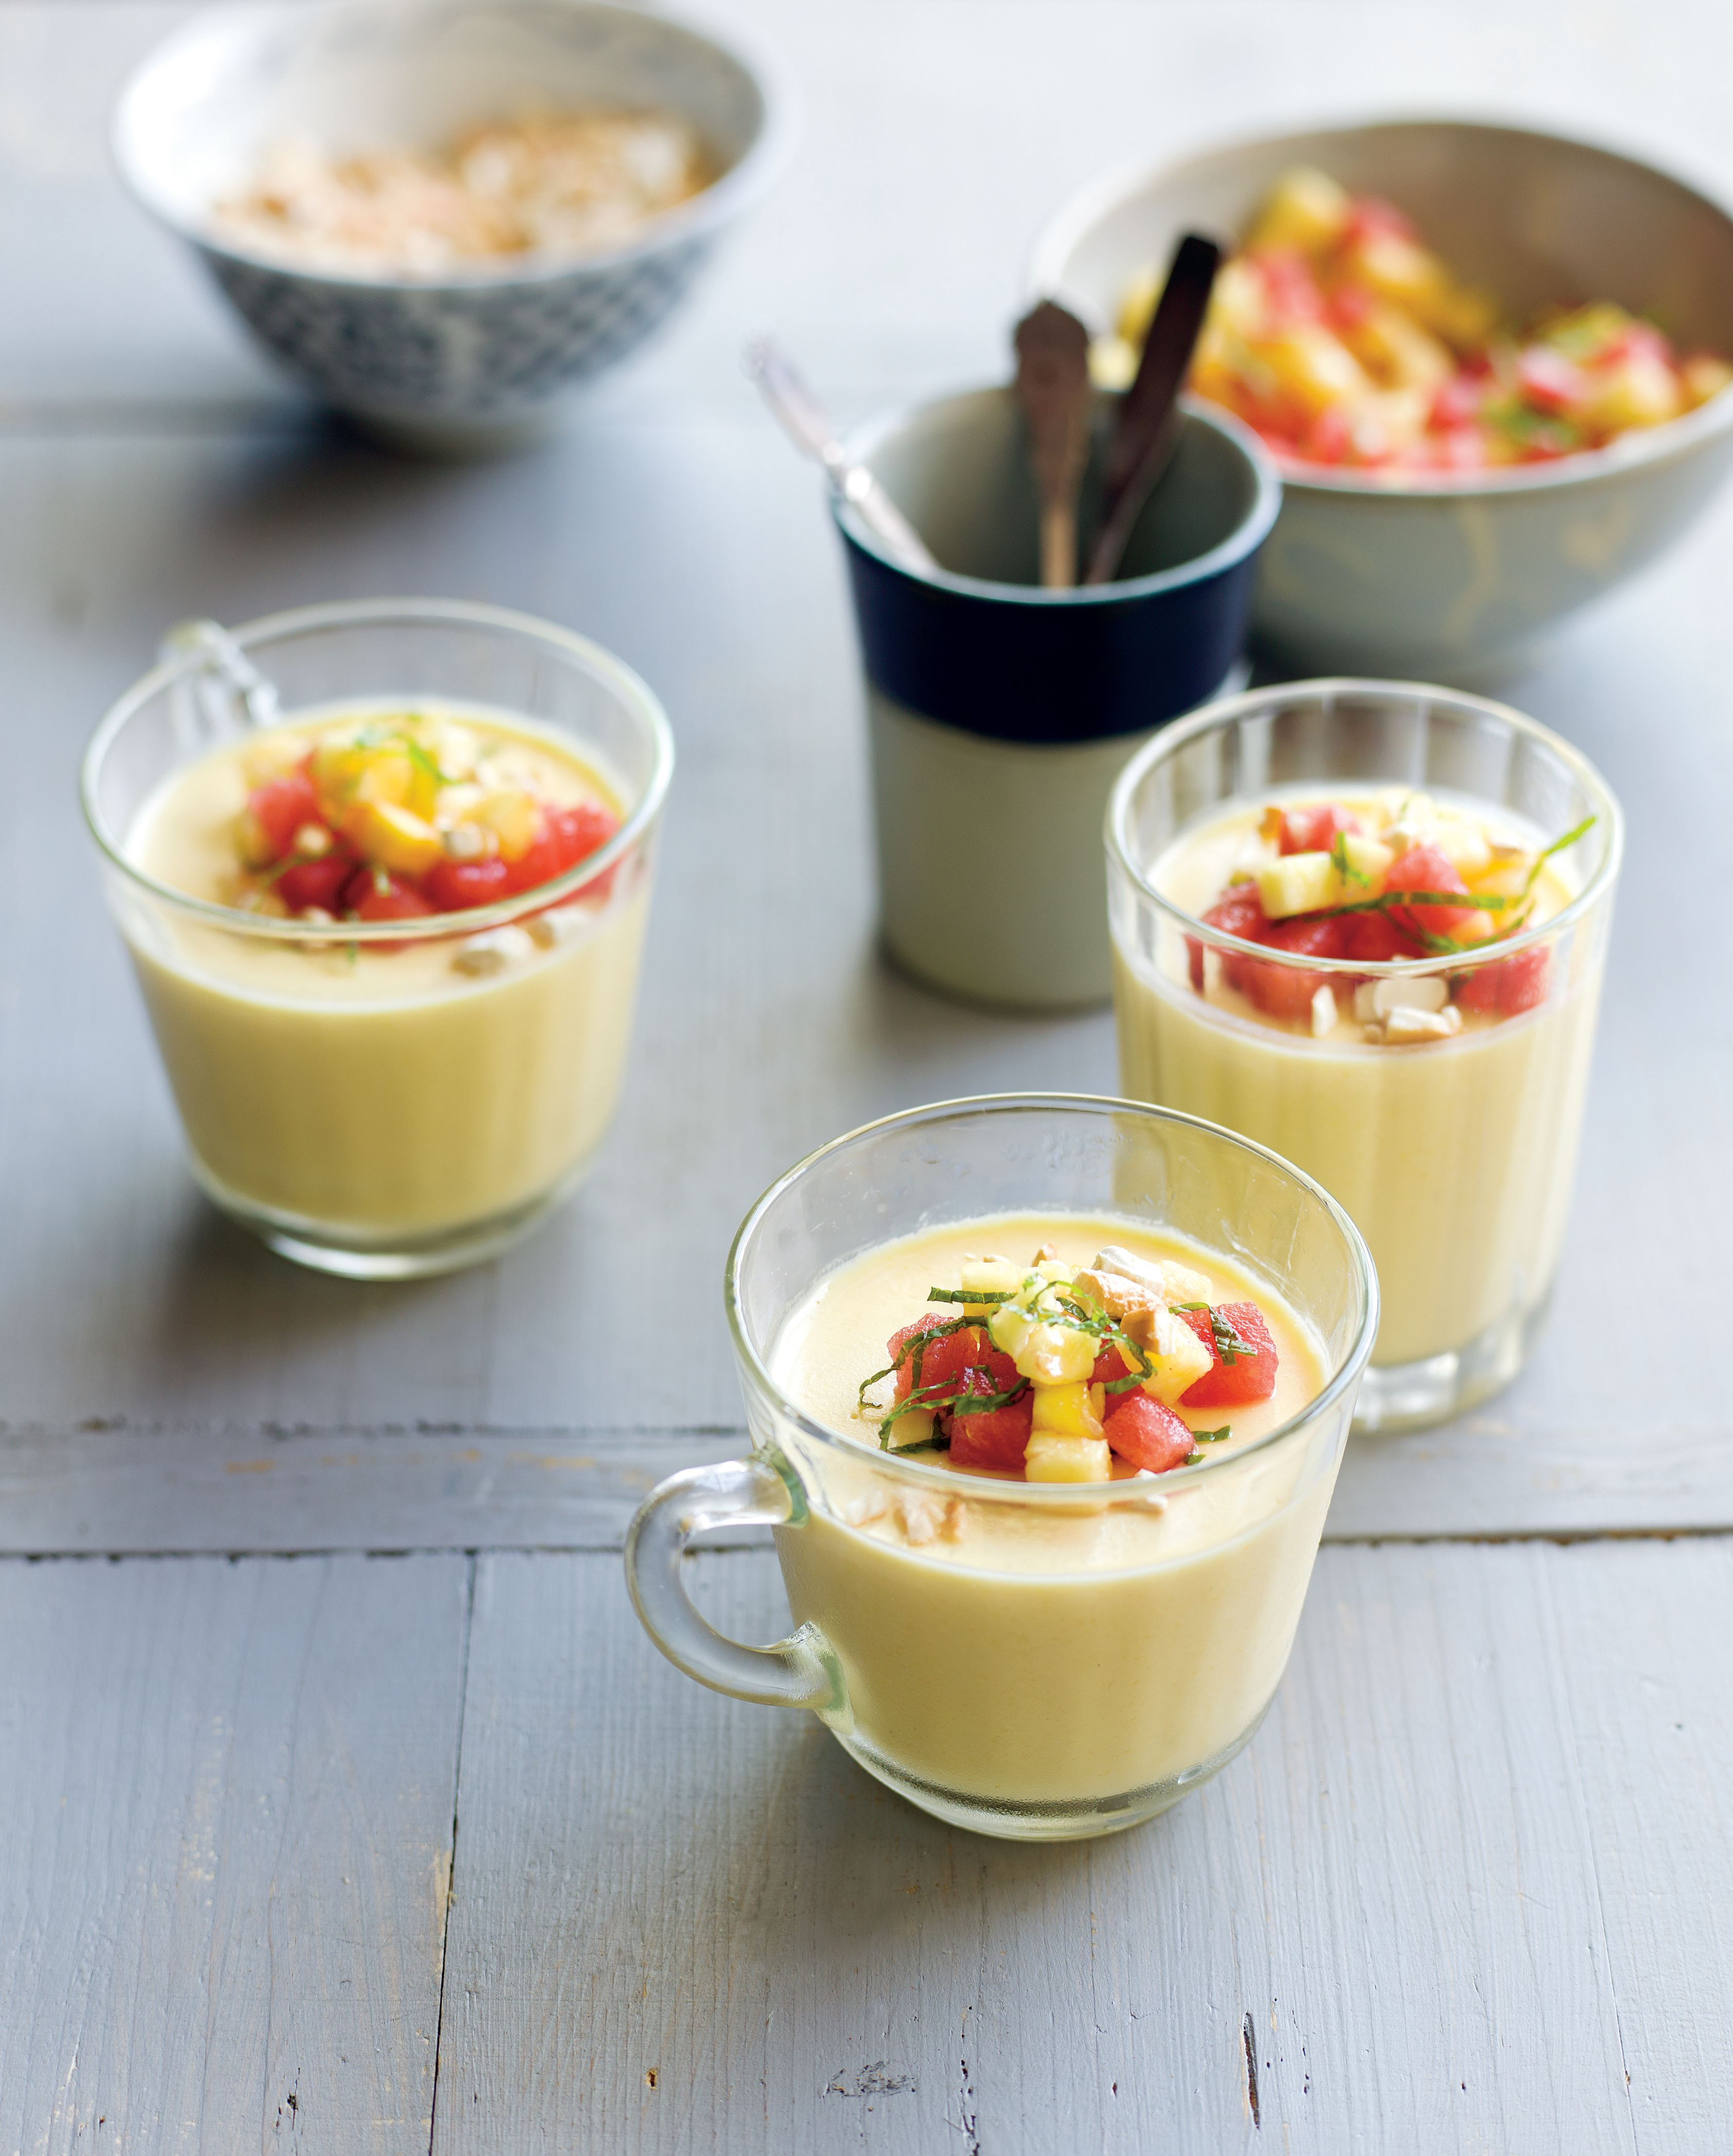 Mango panna cotta with watermelon, pineapple and mint salsa